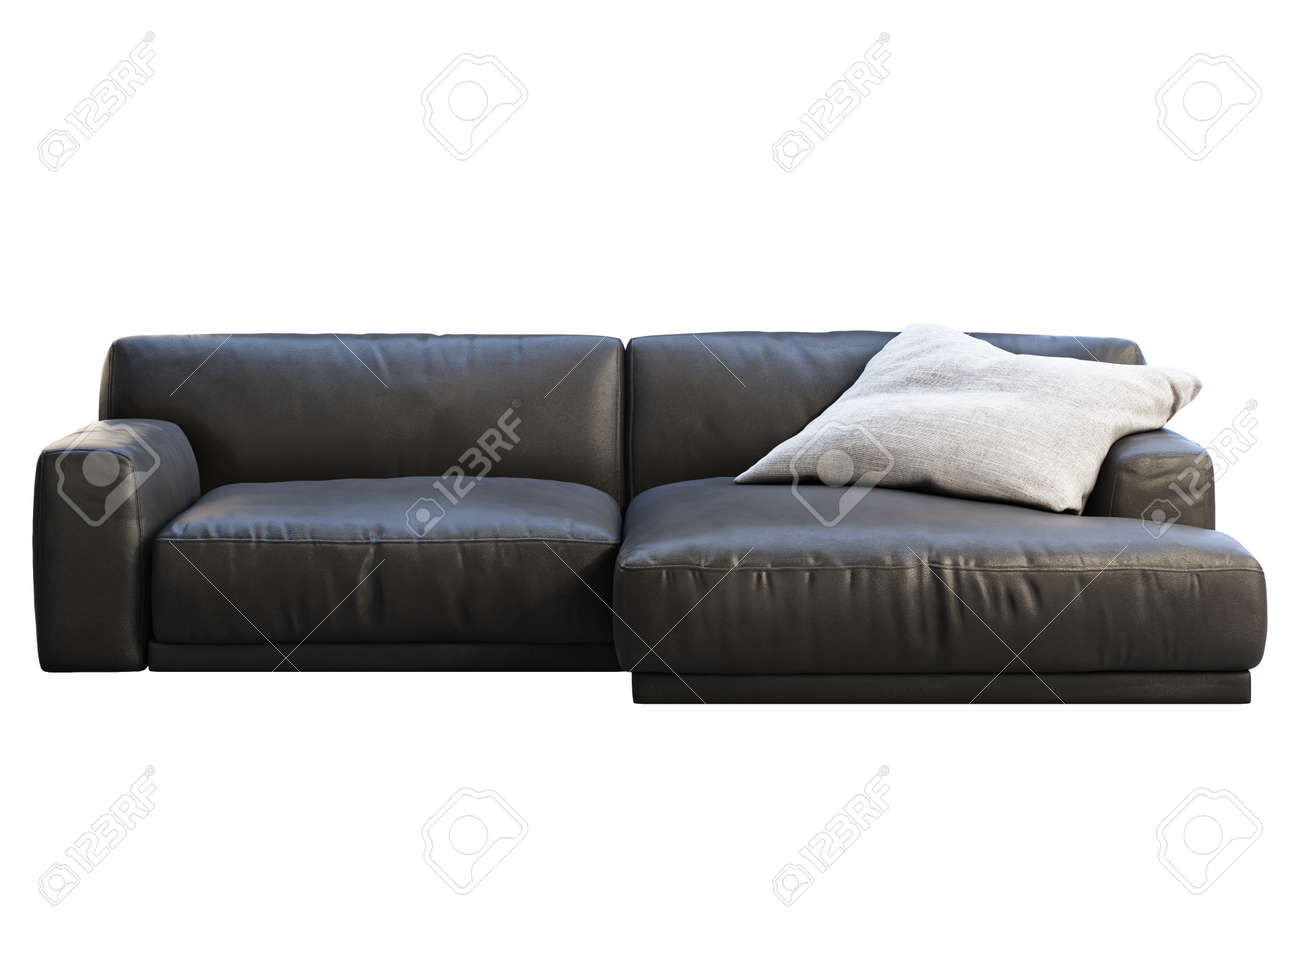 Picture of: Modern Chaise Lounge Sofa Black Leather Sofa With Gray Fabric Stock Photo Picture And Royalty Free Image Image 145879373